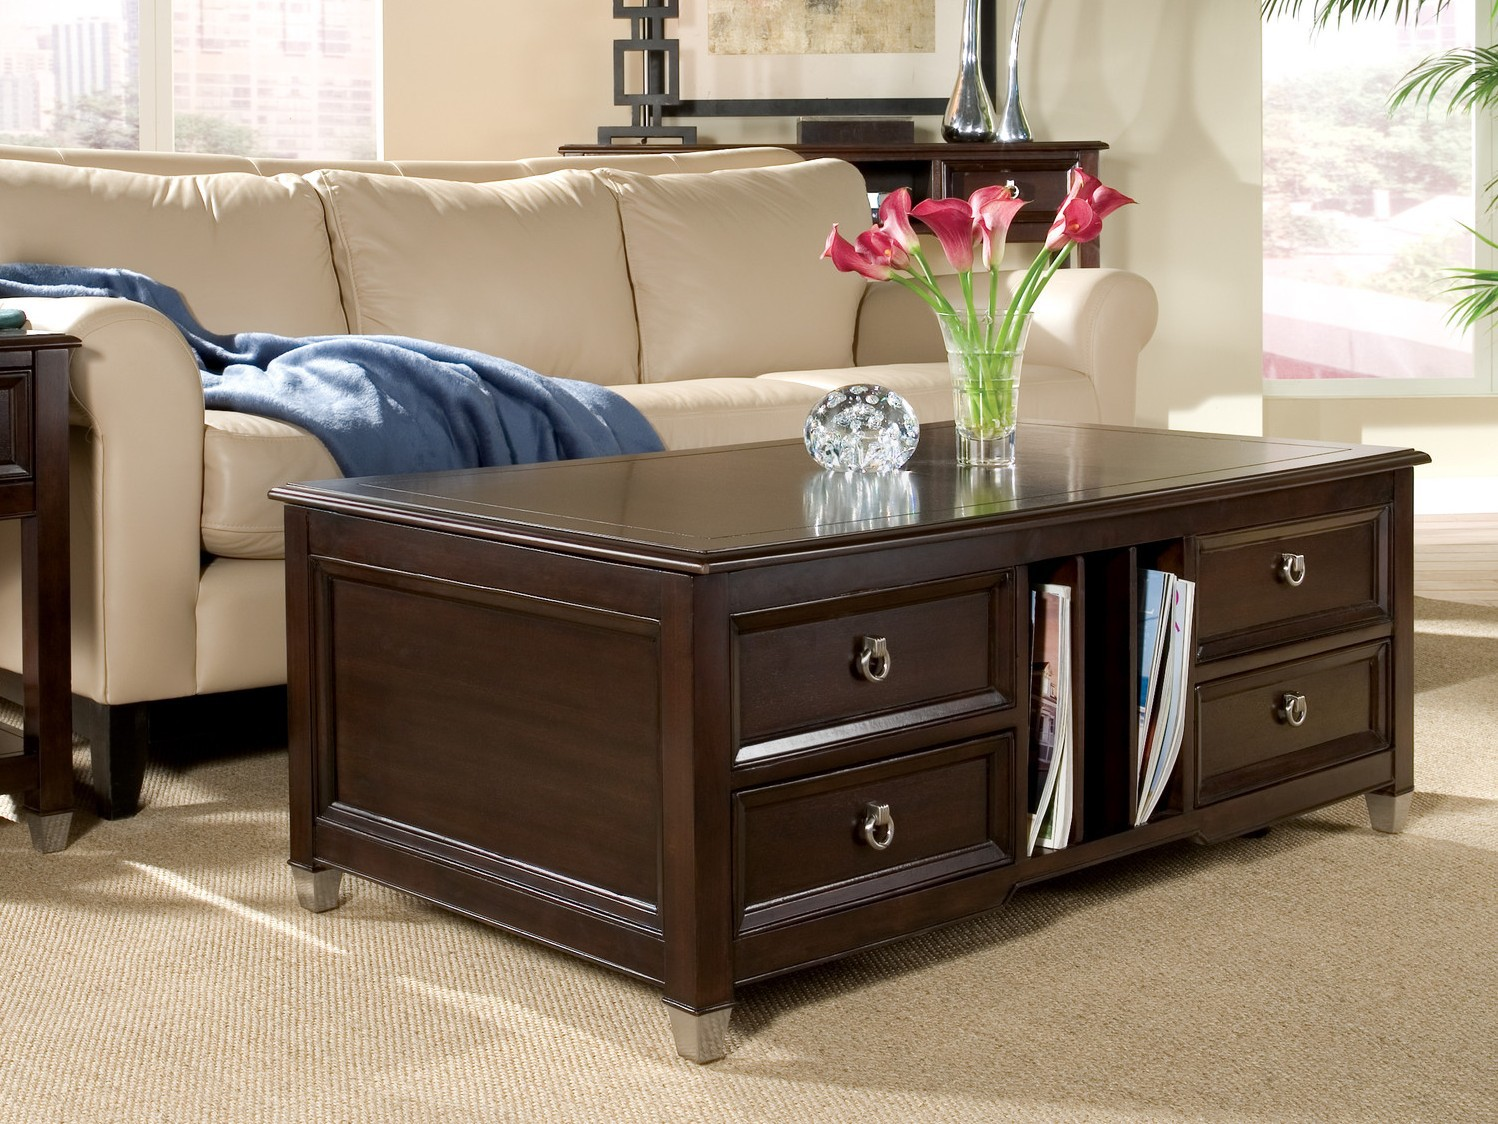 Traditional Coffee Table With Drawers